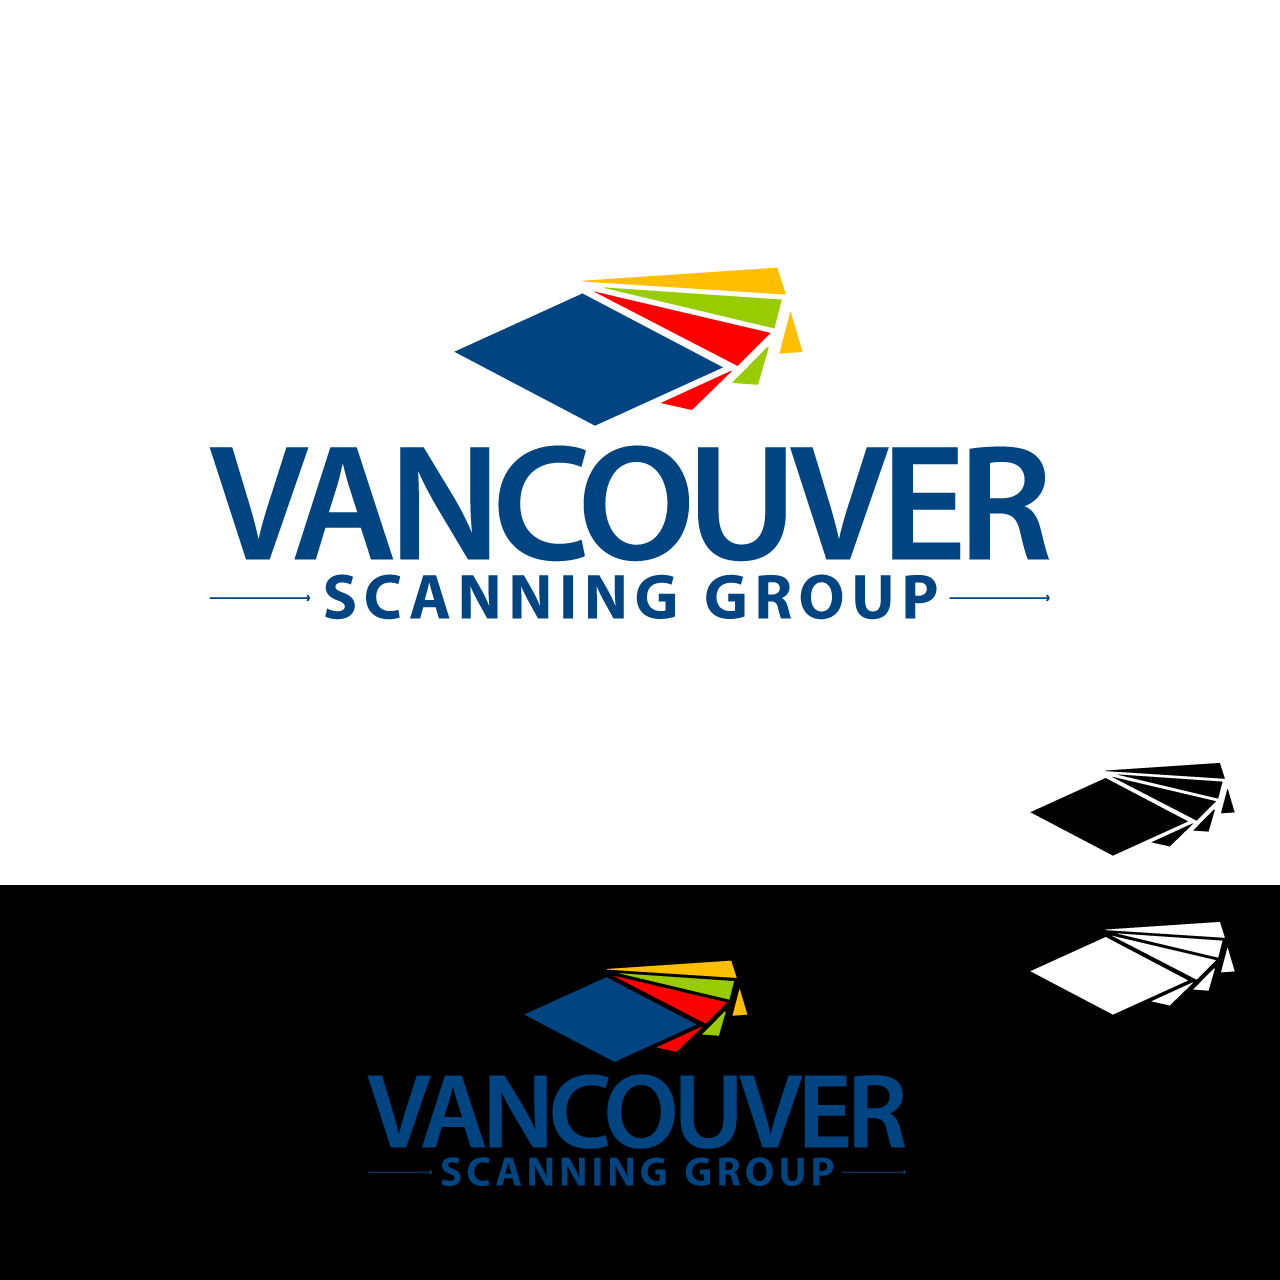 Logo Design by umxca - Entry No. 75 in the Logo Design Contest Vancouver Scanning Group.